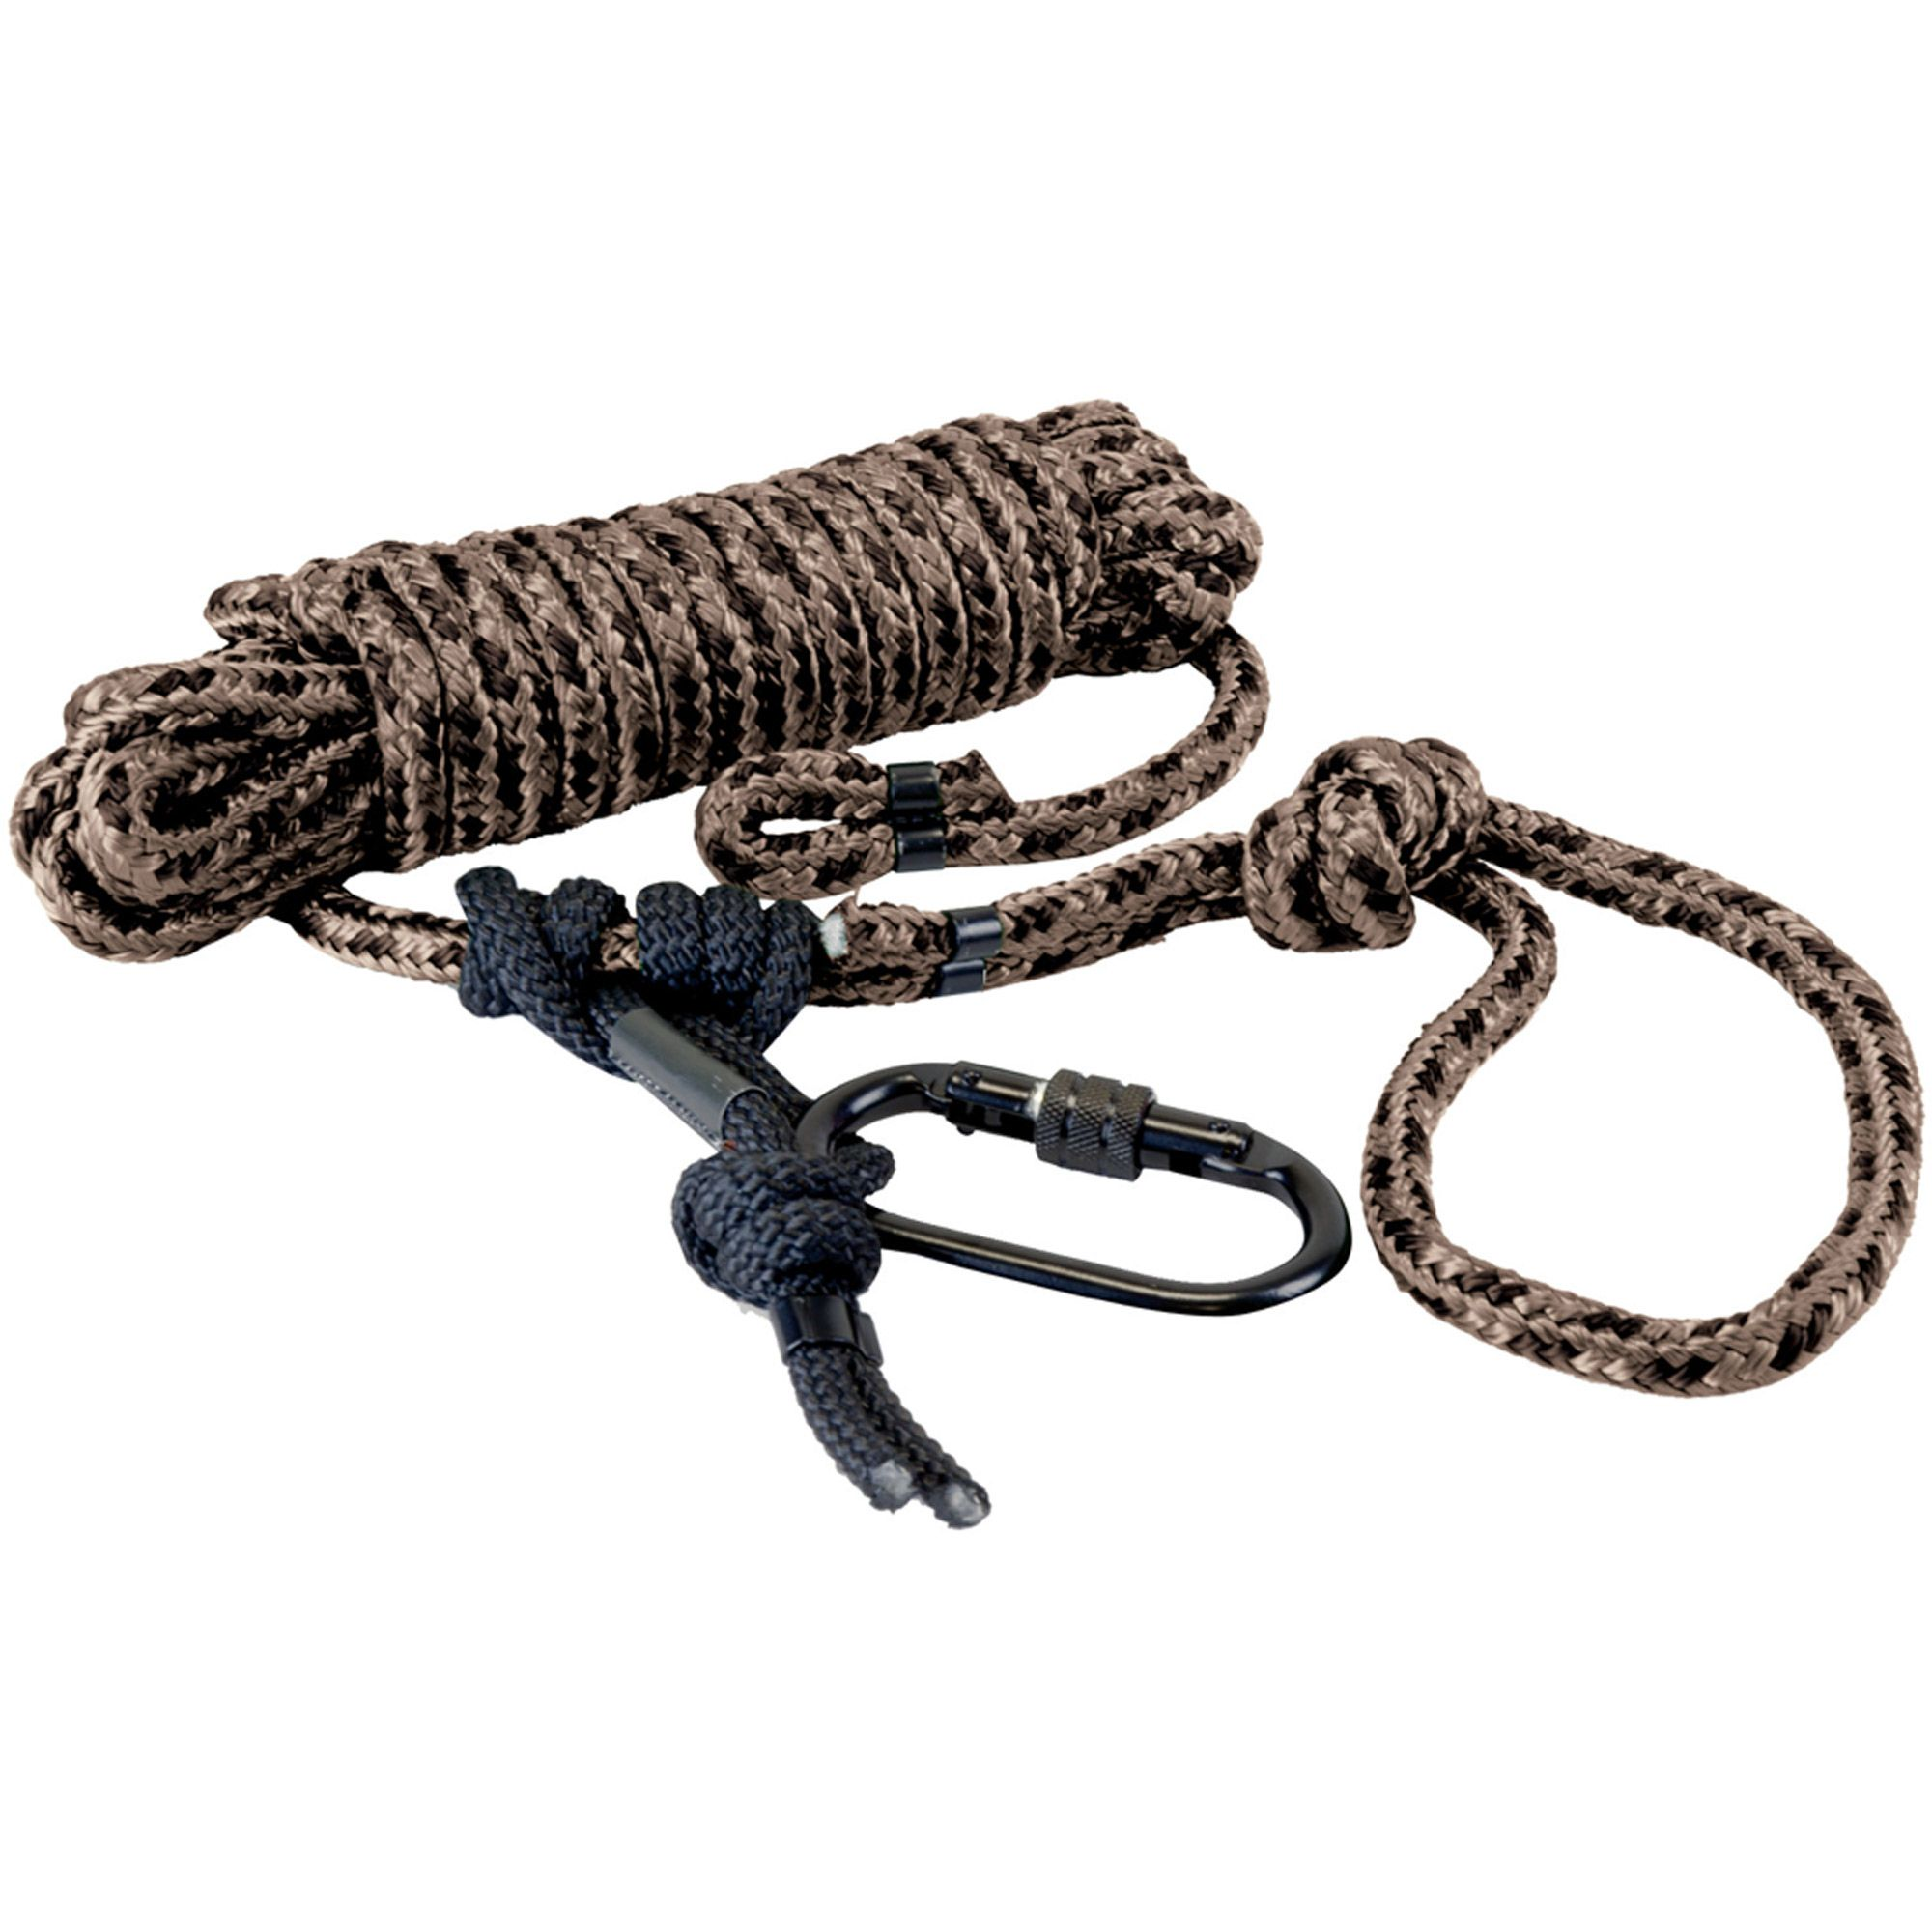 Sports & Outdoors Safety rope, Rope, Tree stand accessories